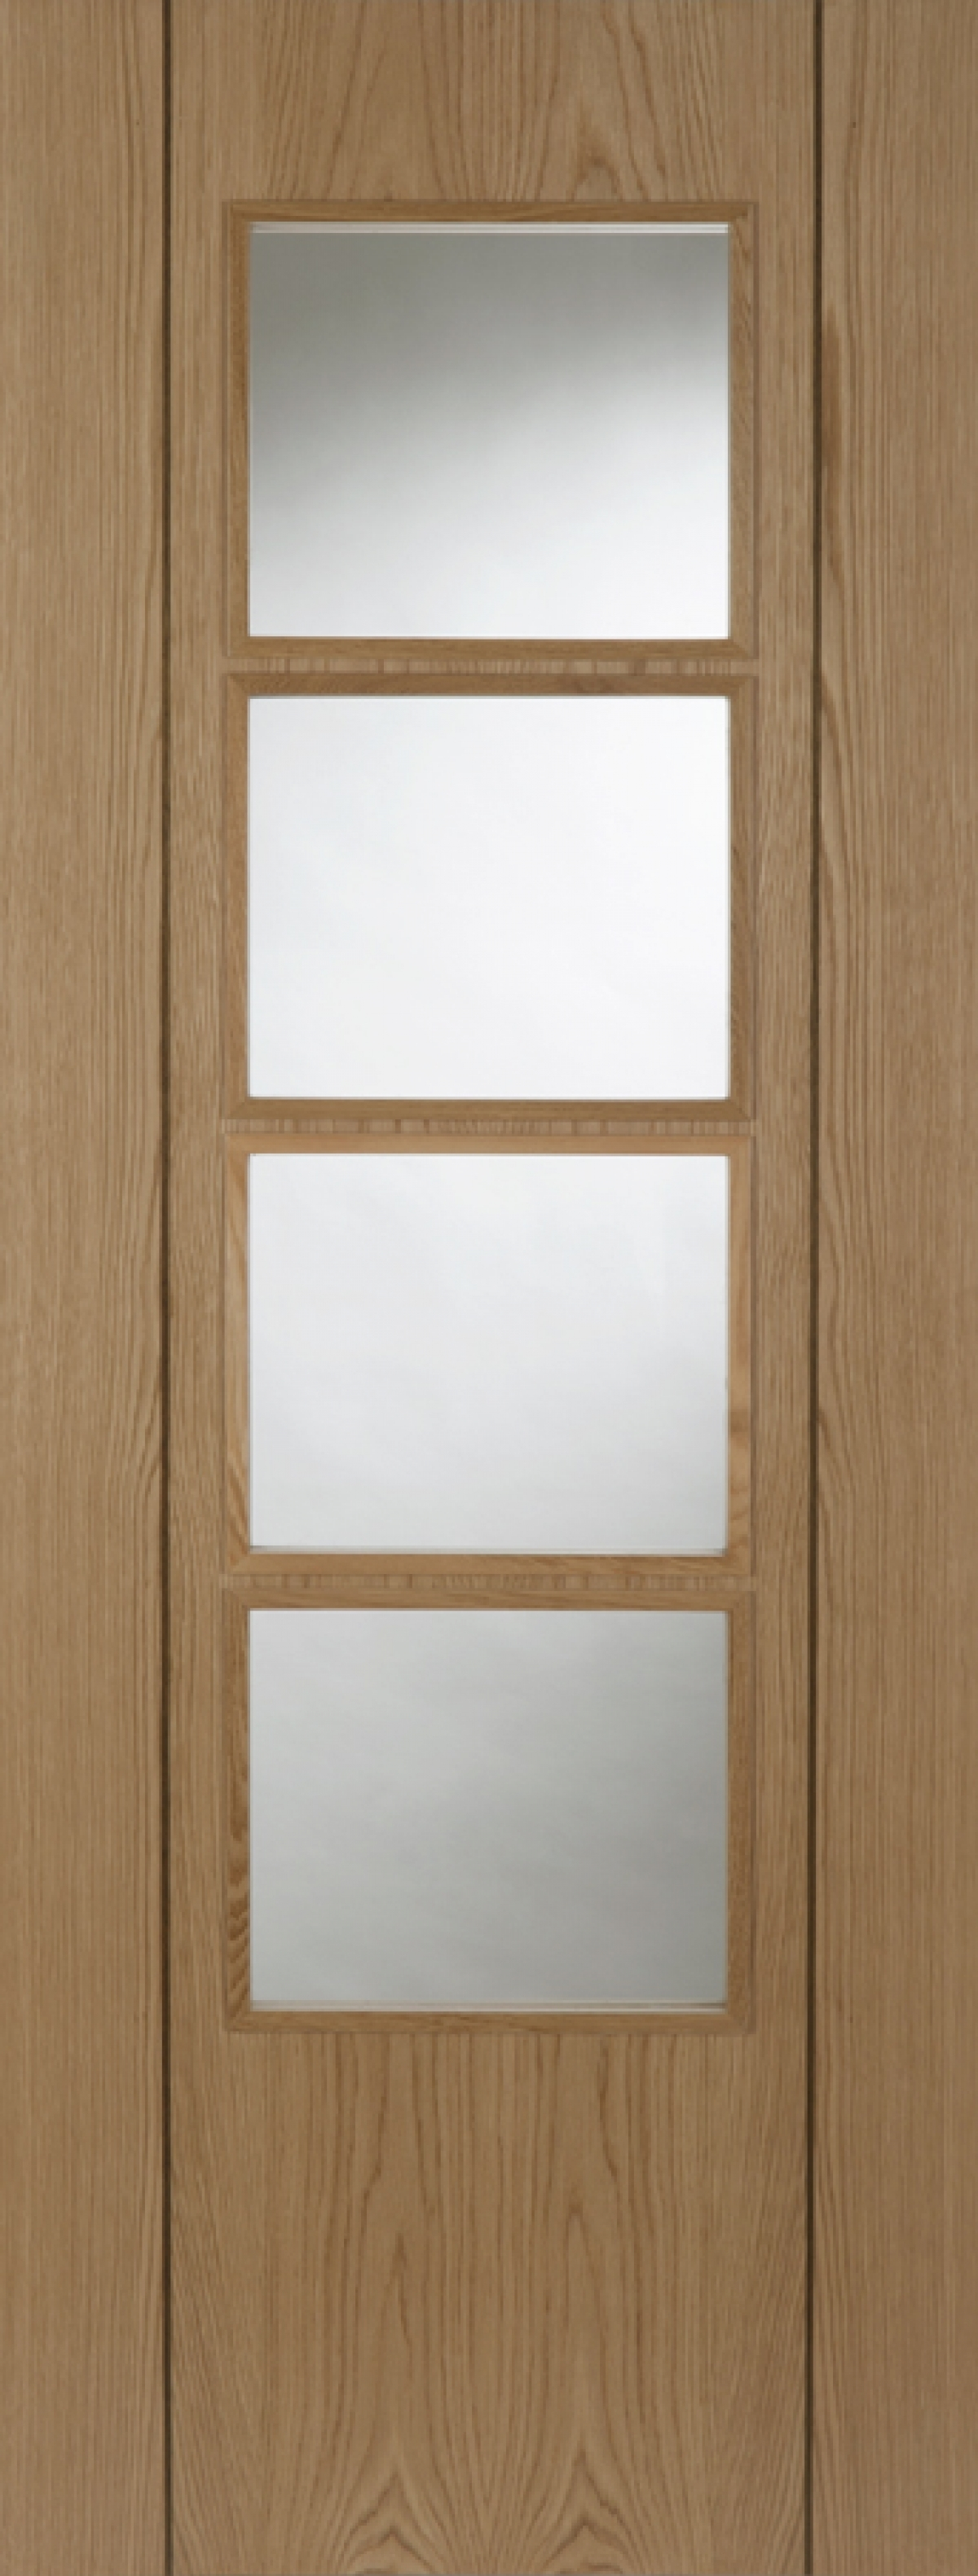 Oak Vision 4L - Prefinished Unglazed FD30